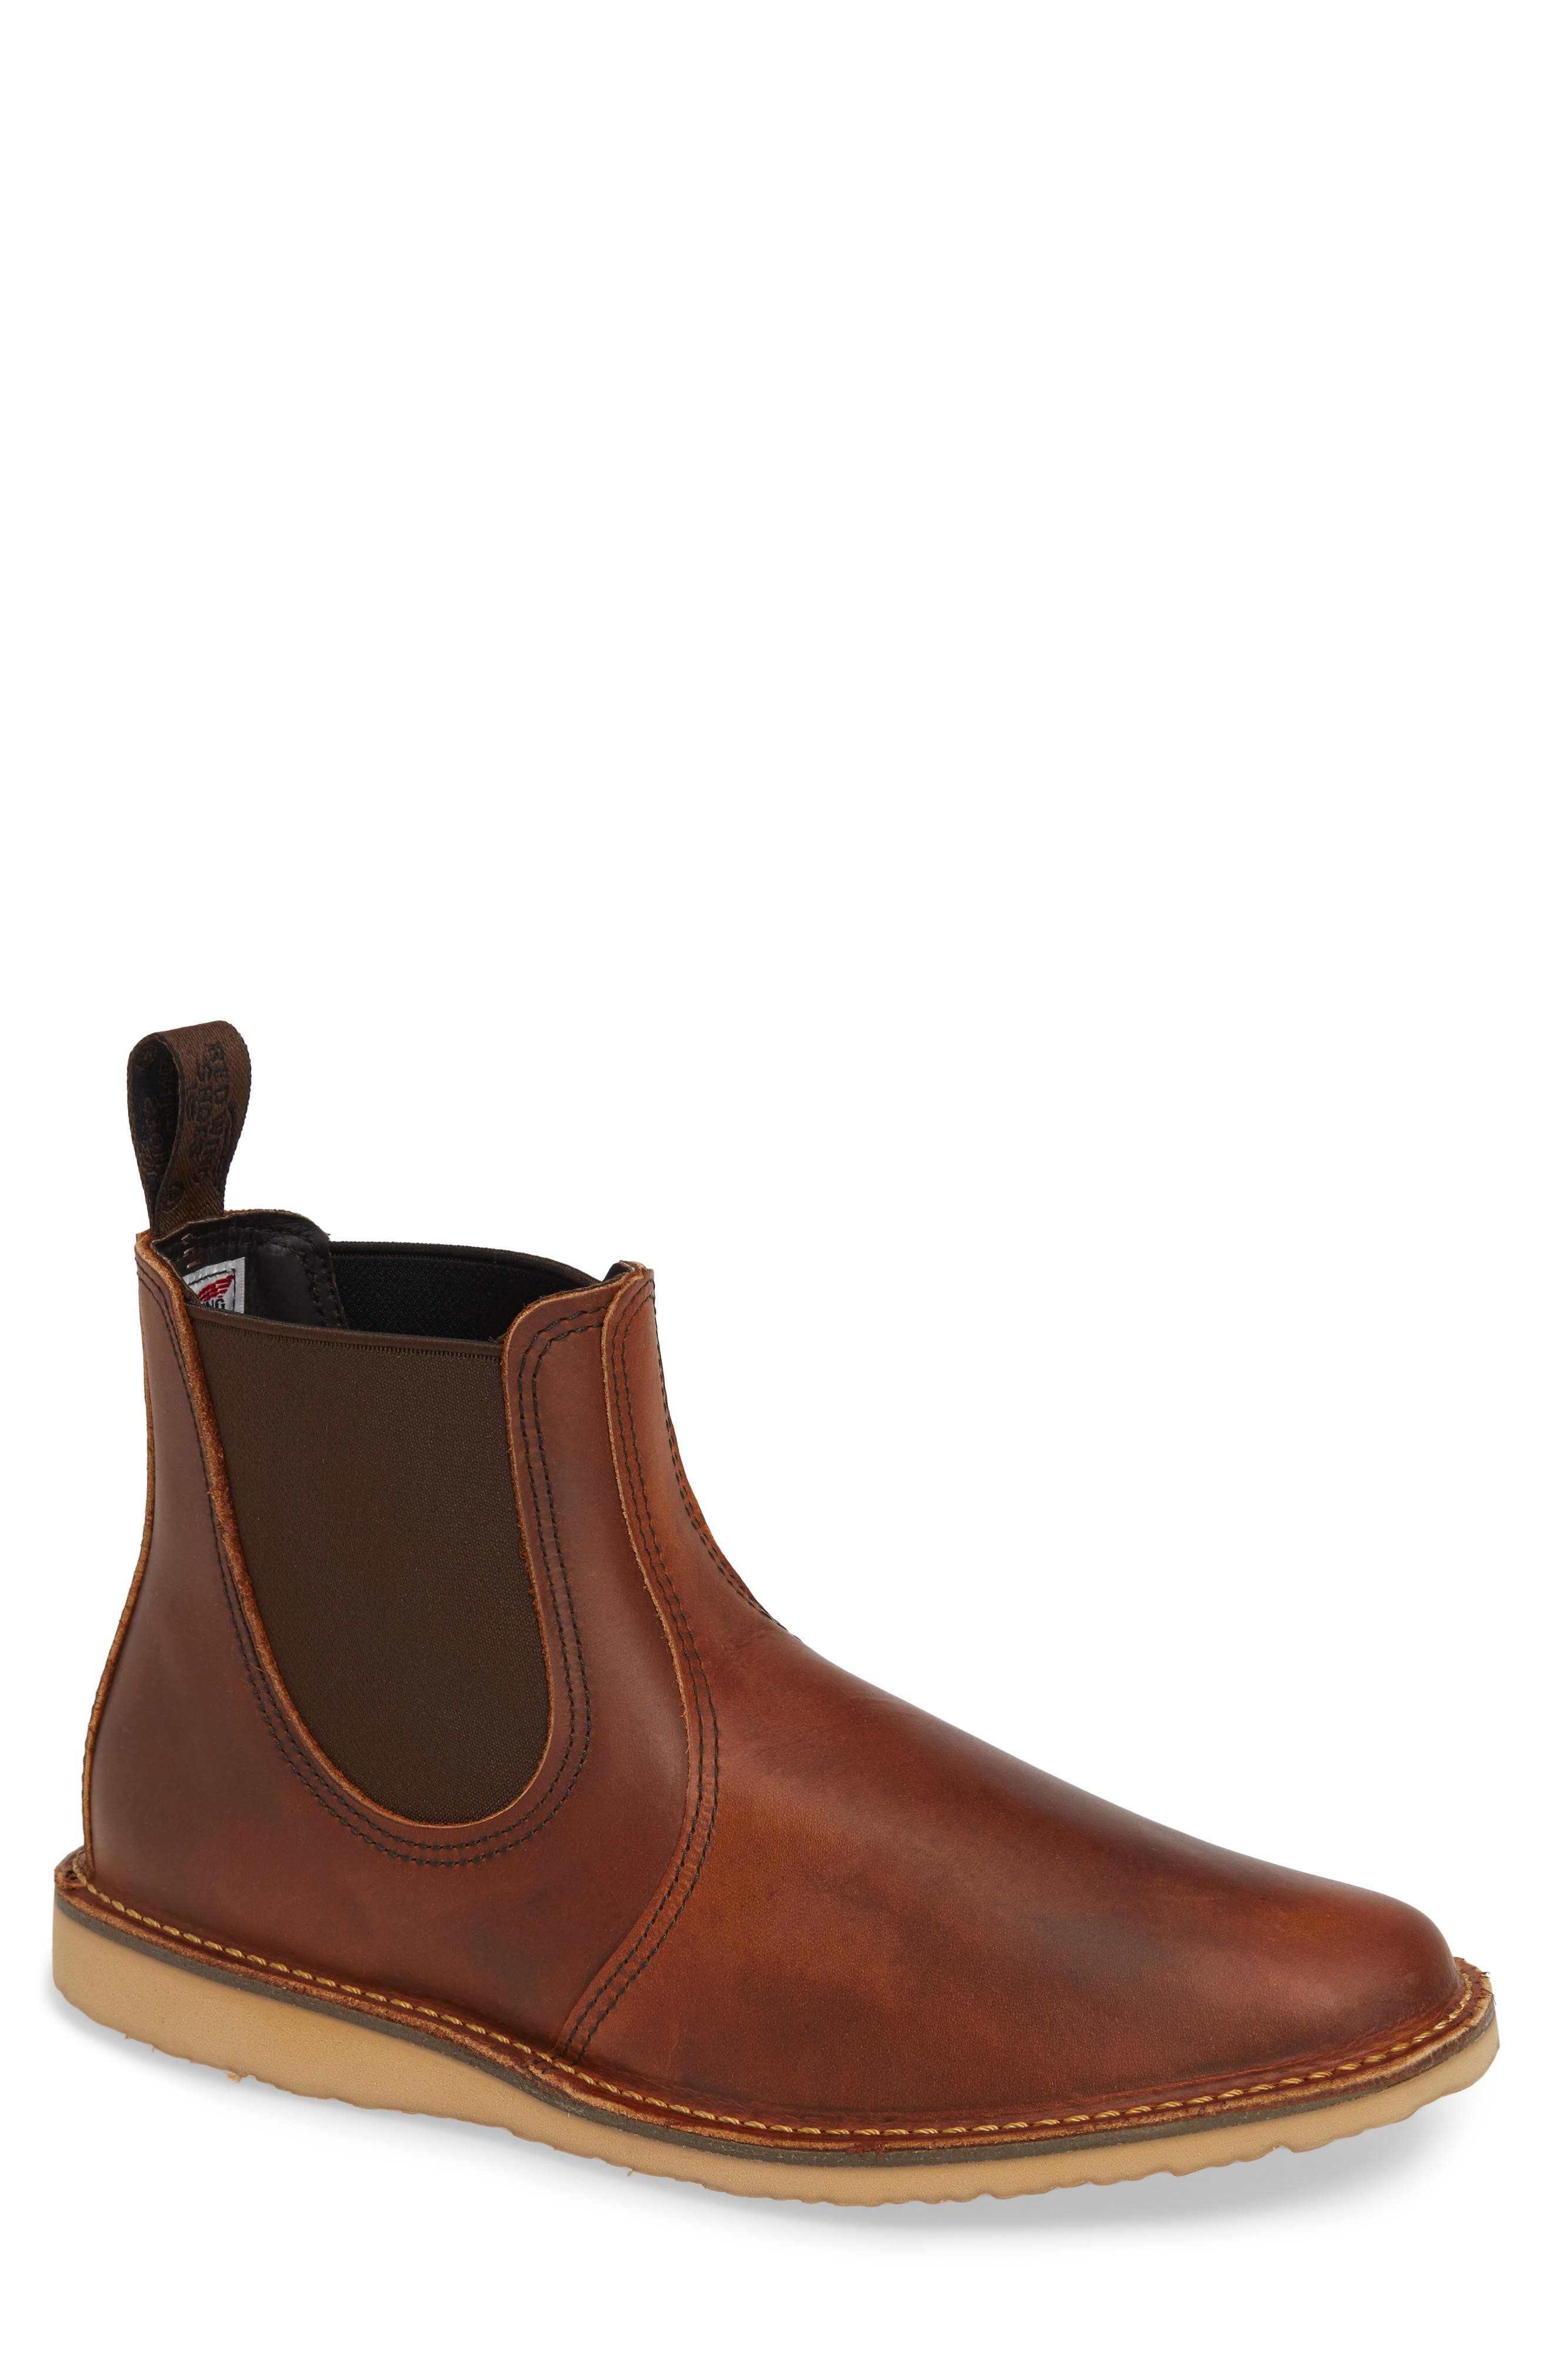 Chelsea Boot,                             Main thumbnail 1, color,                             COPPER LEATHER